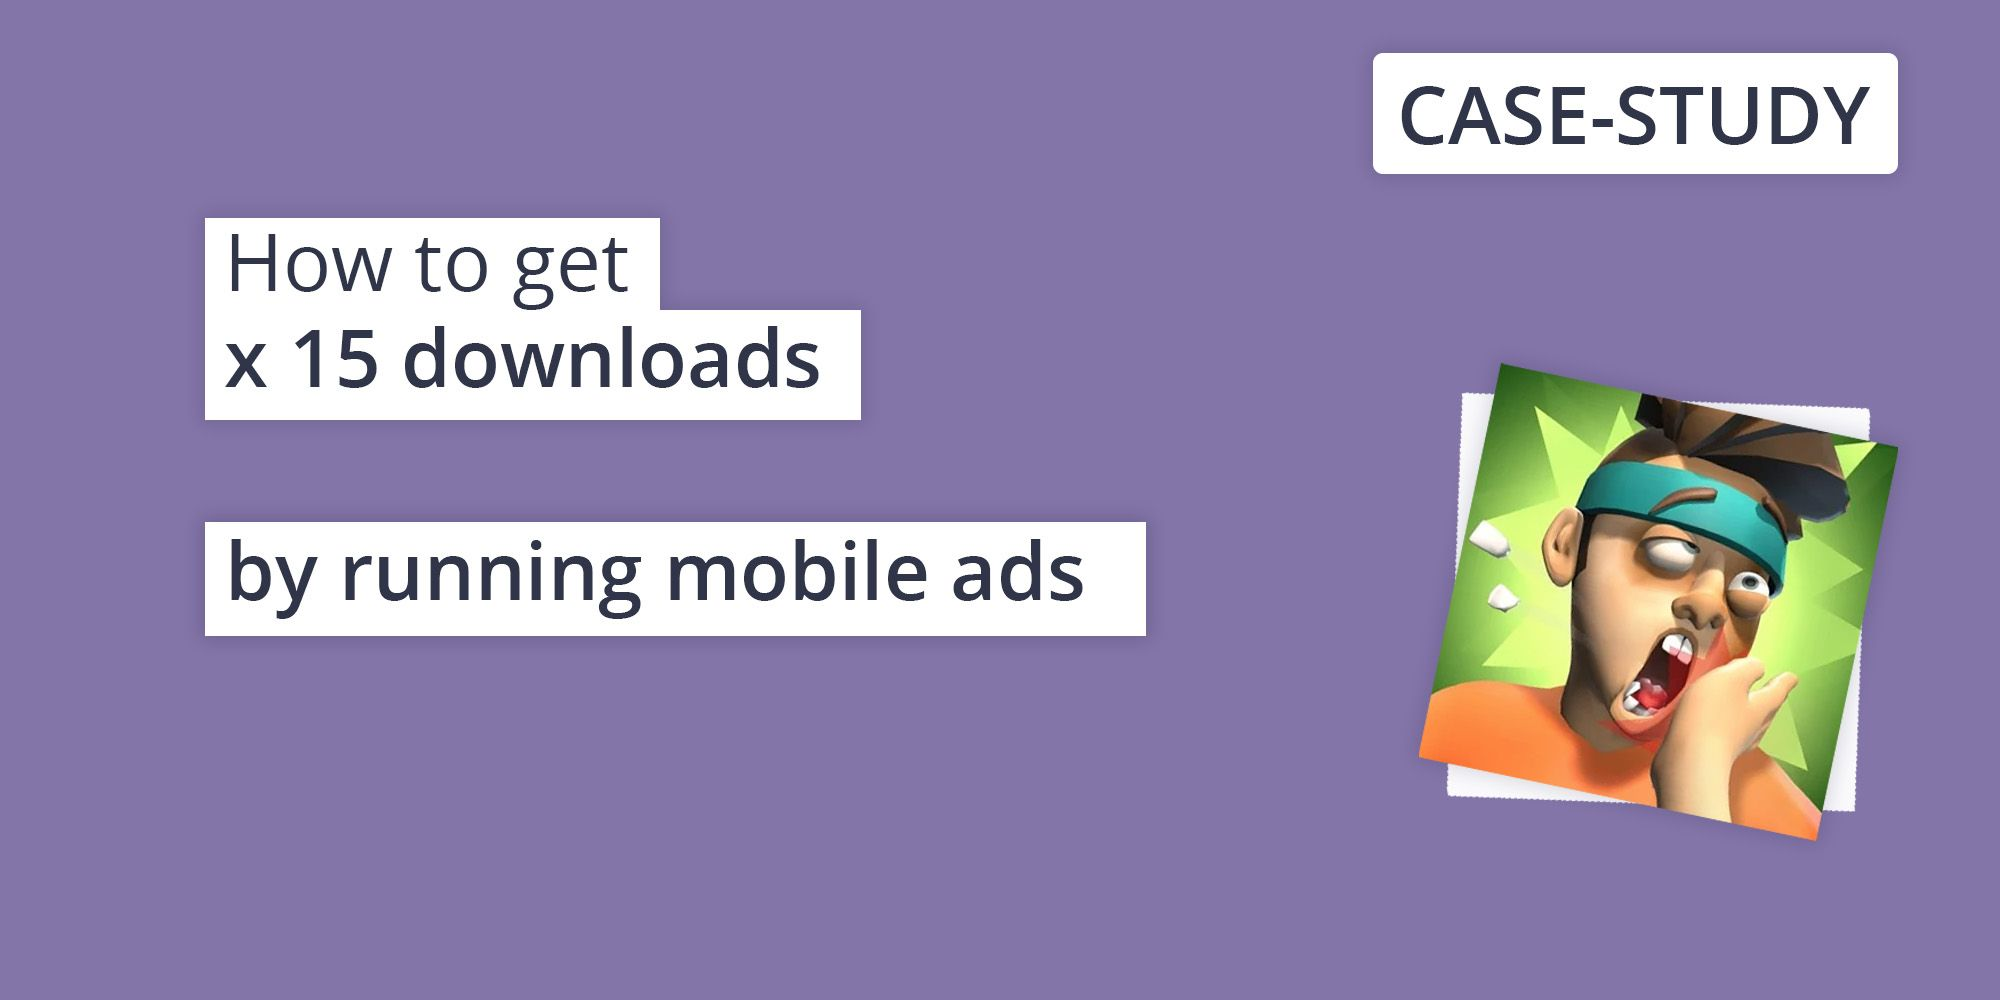 How running mobile ads can help you increase downloads x15